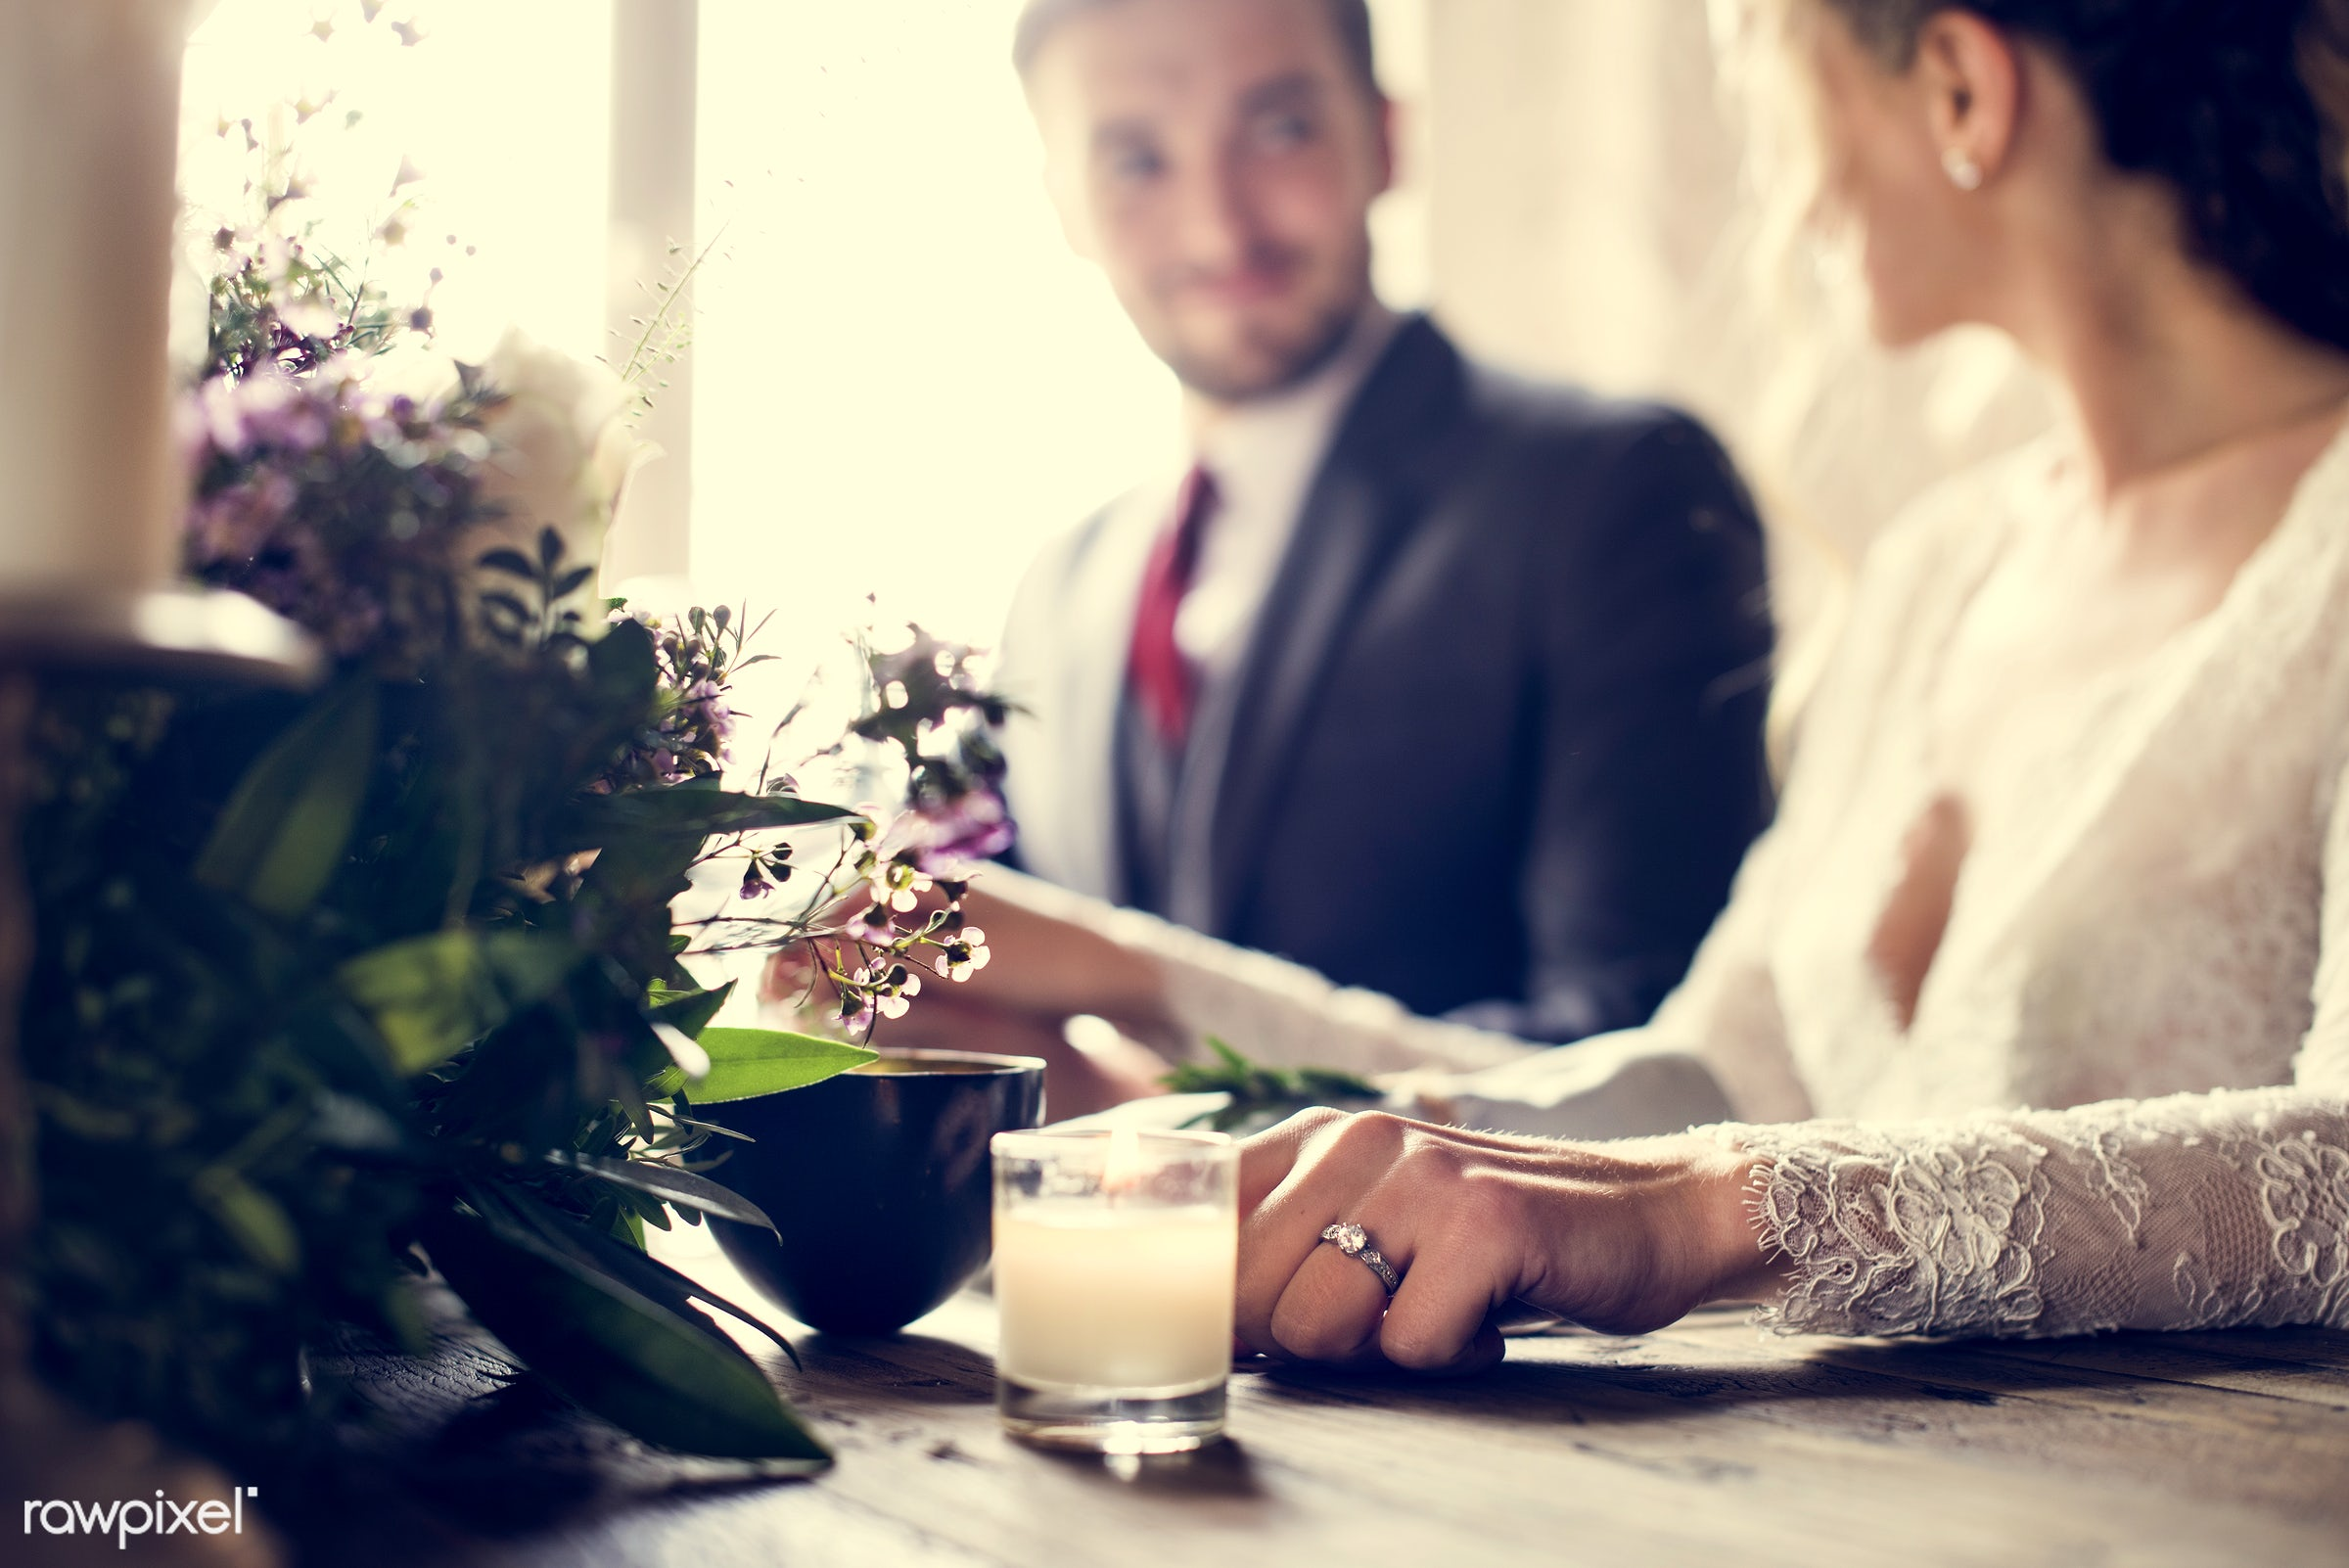 expression, person, congratulations, husband, people, together, love, married, congrats, hands, woman, gather, drink, glass...